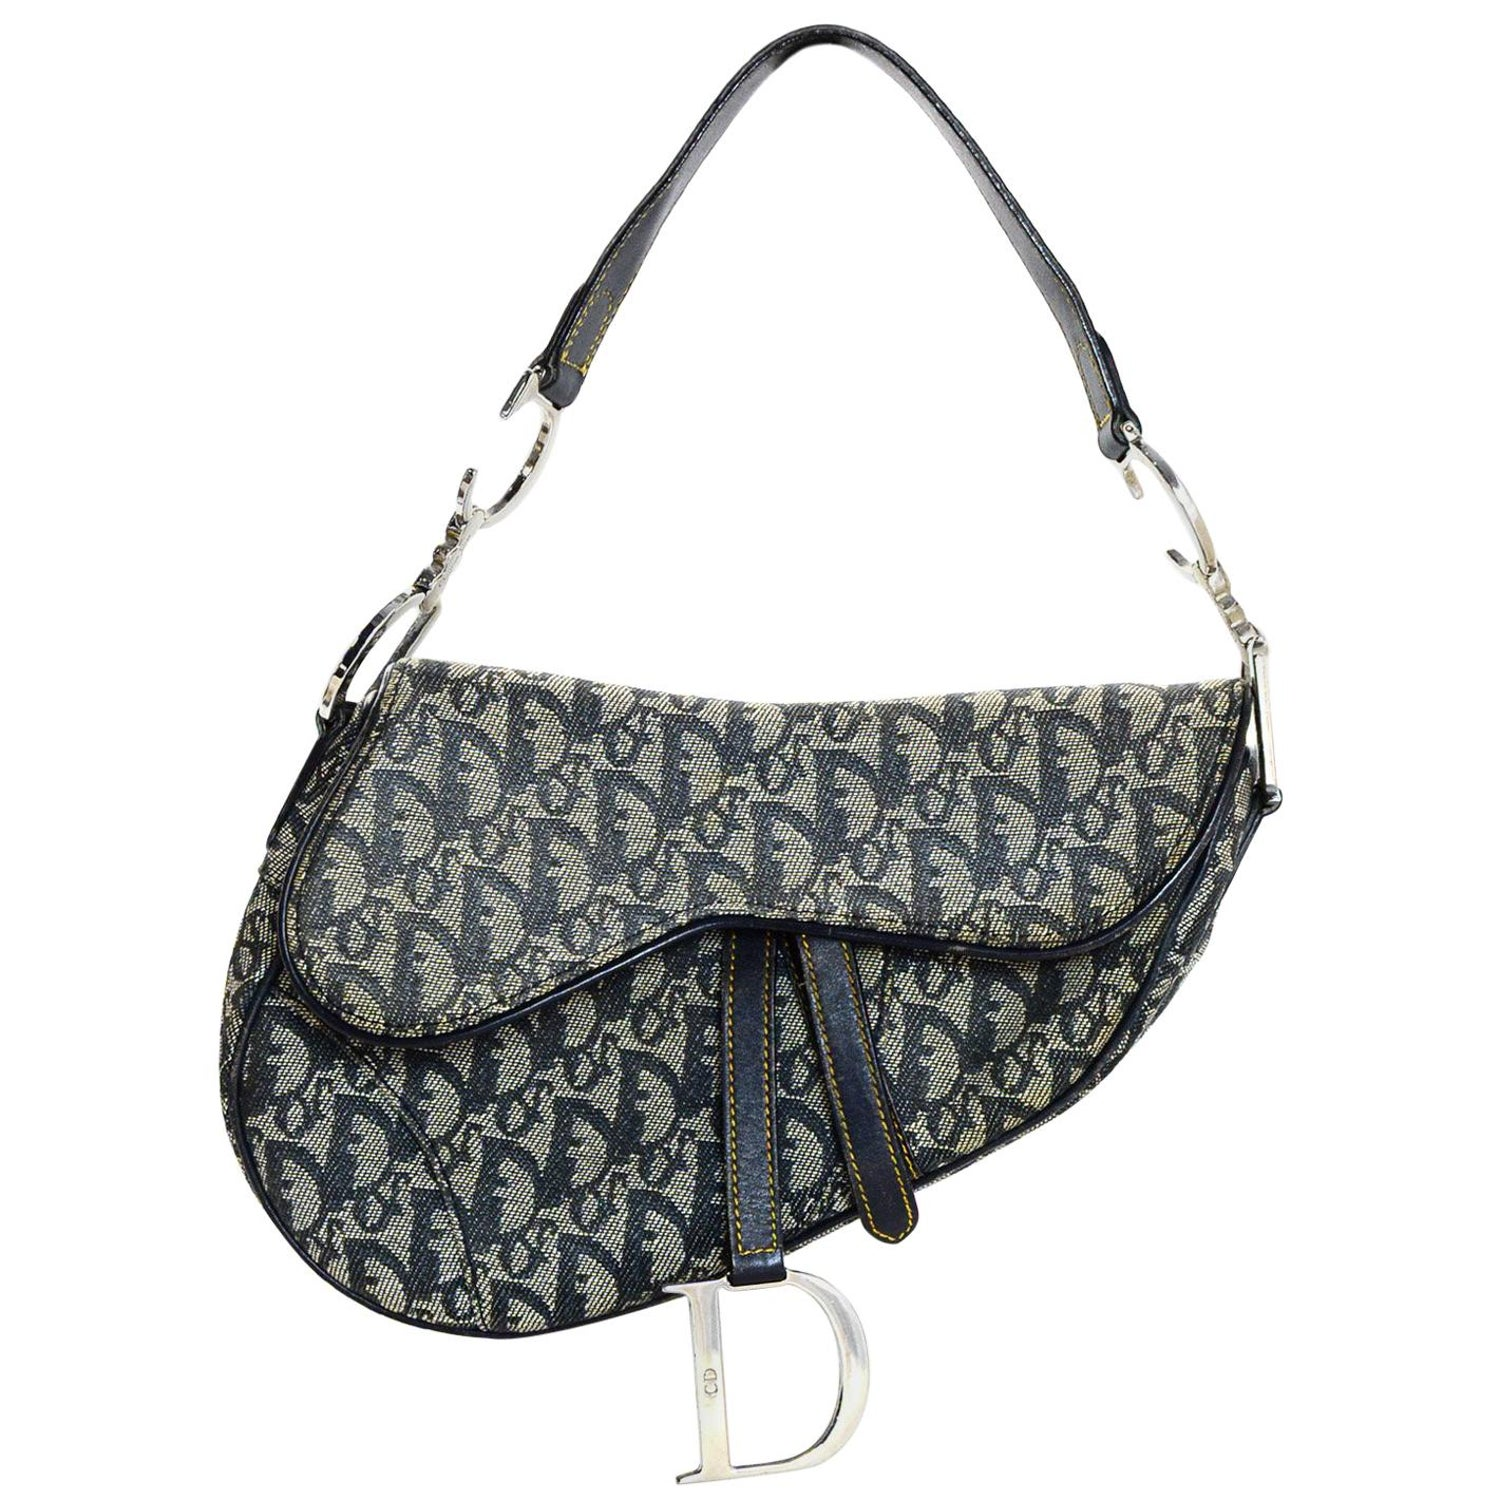 Christian Dior Vintage Canvas Monogram Blue D Saddle Bag For Sale at 1stdibs bb4e7736a1587